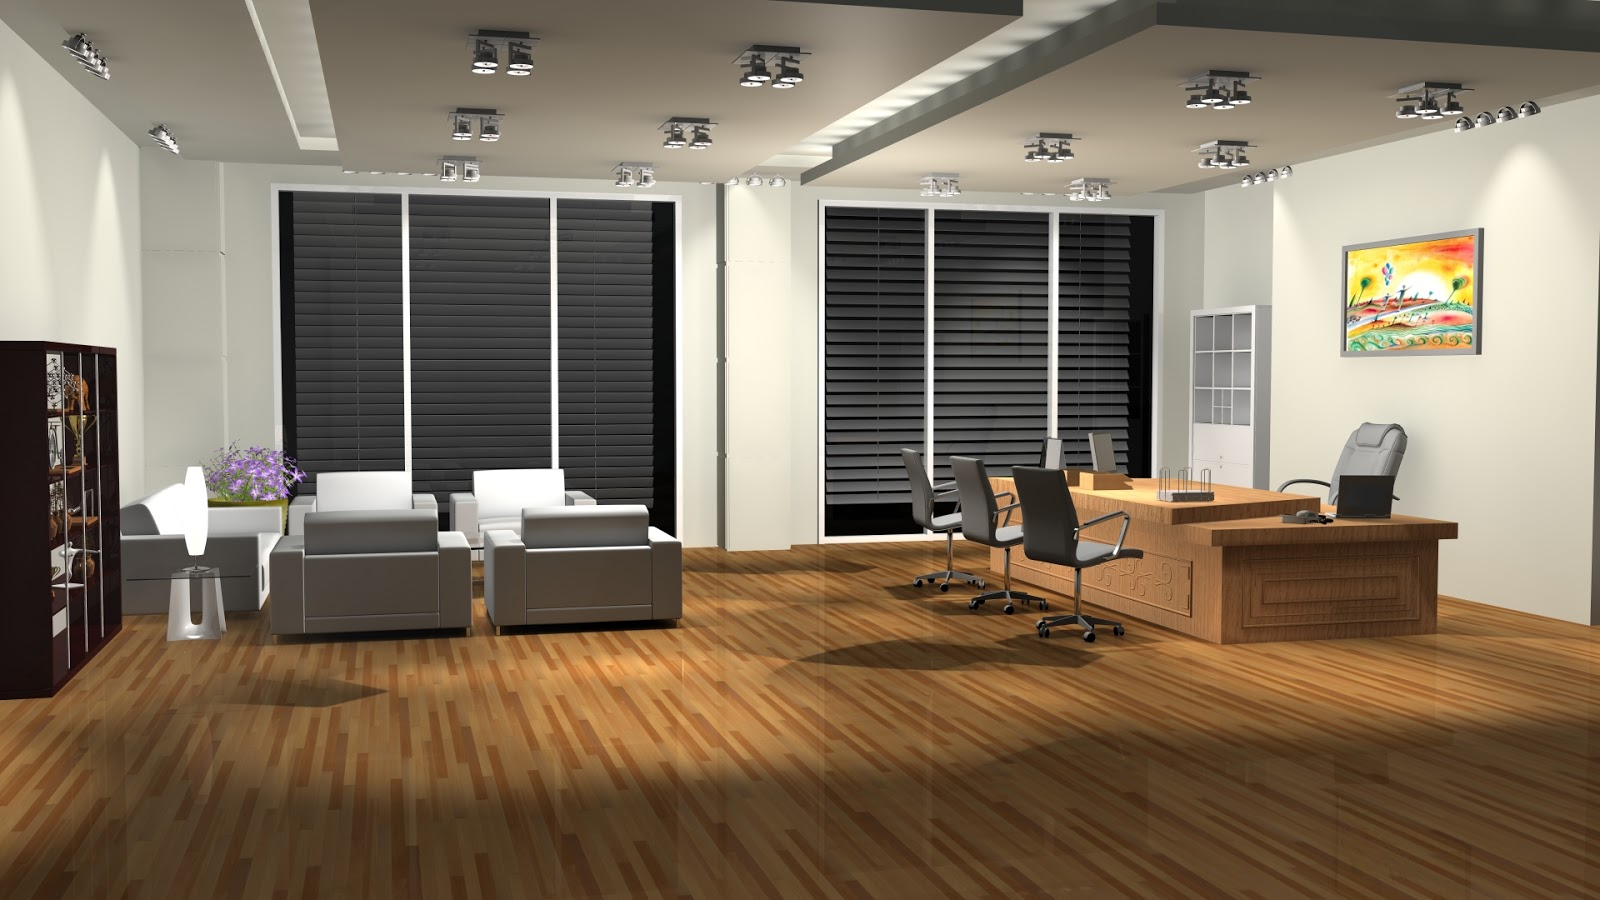 Sajid designs office room 3d interior design 3ds max 3d room